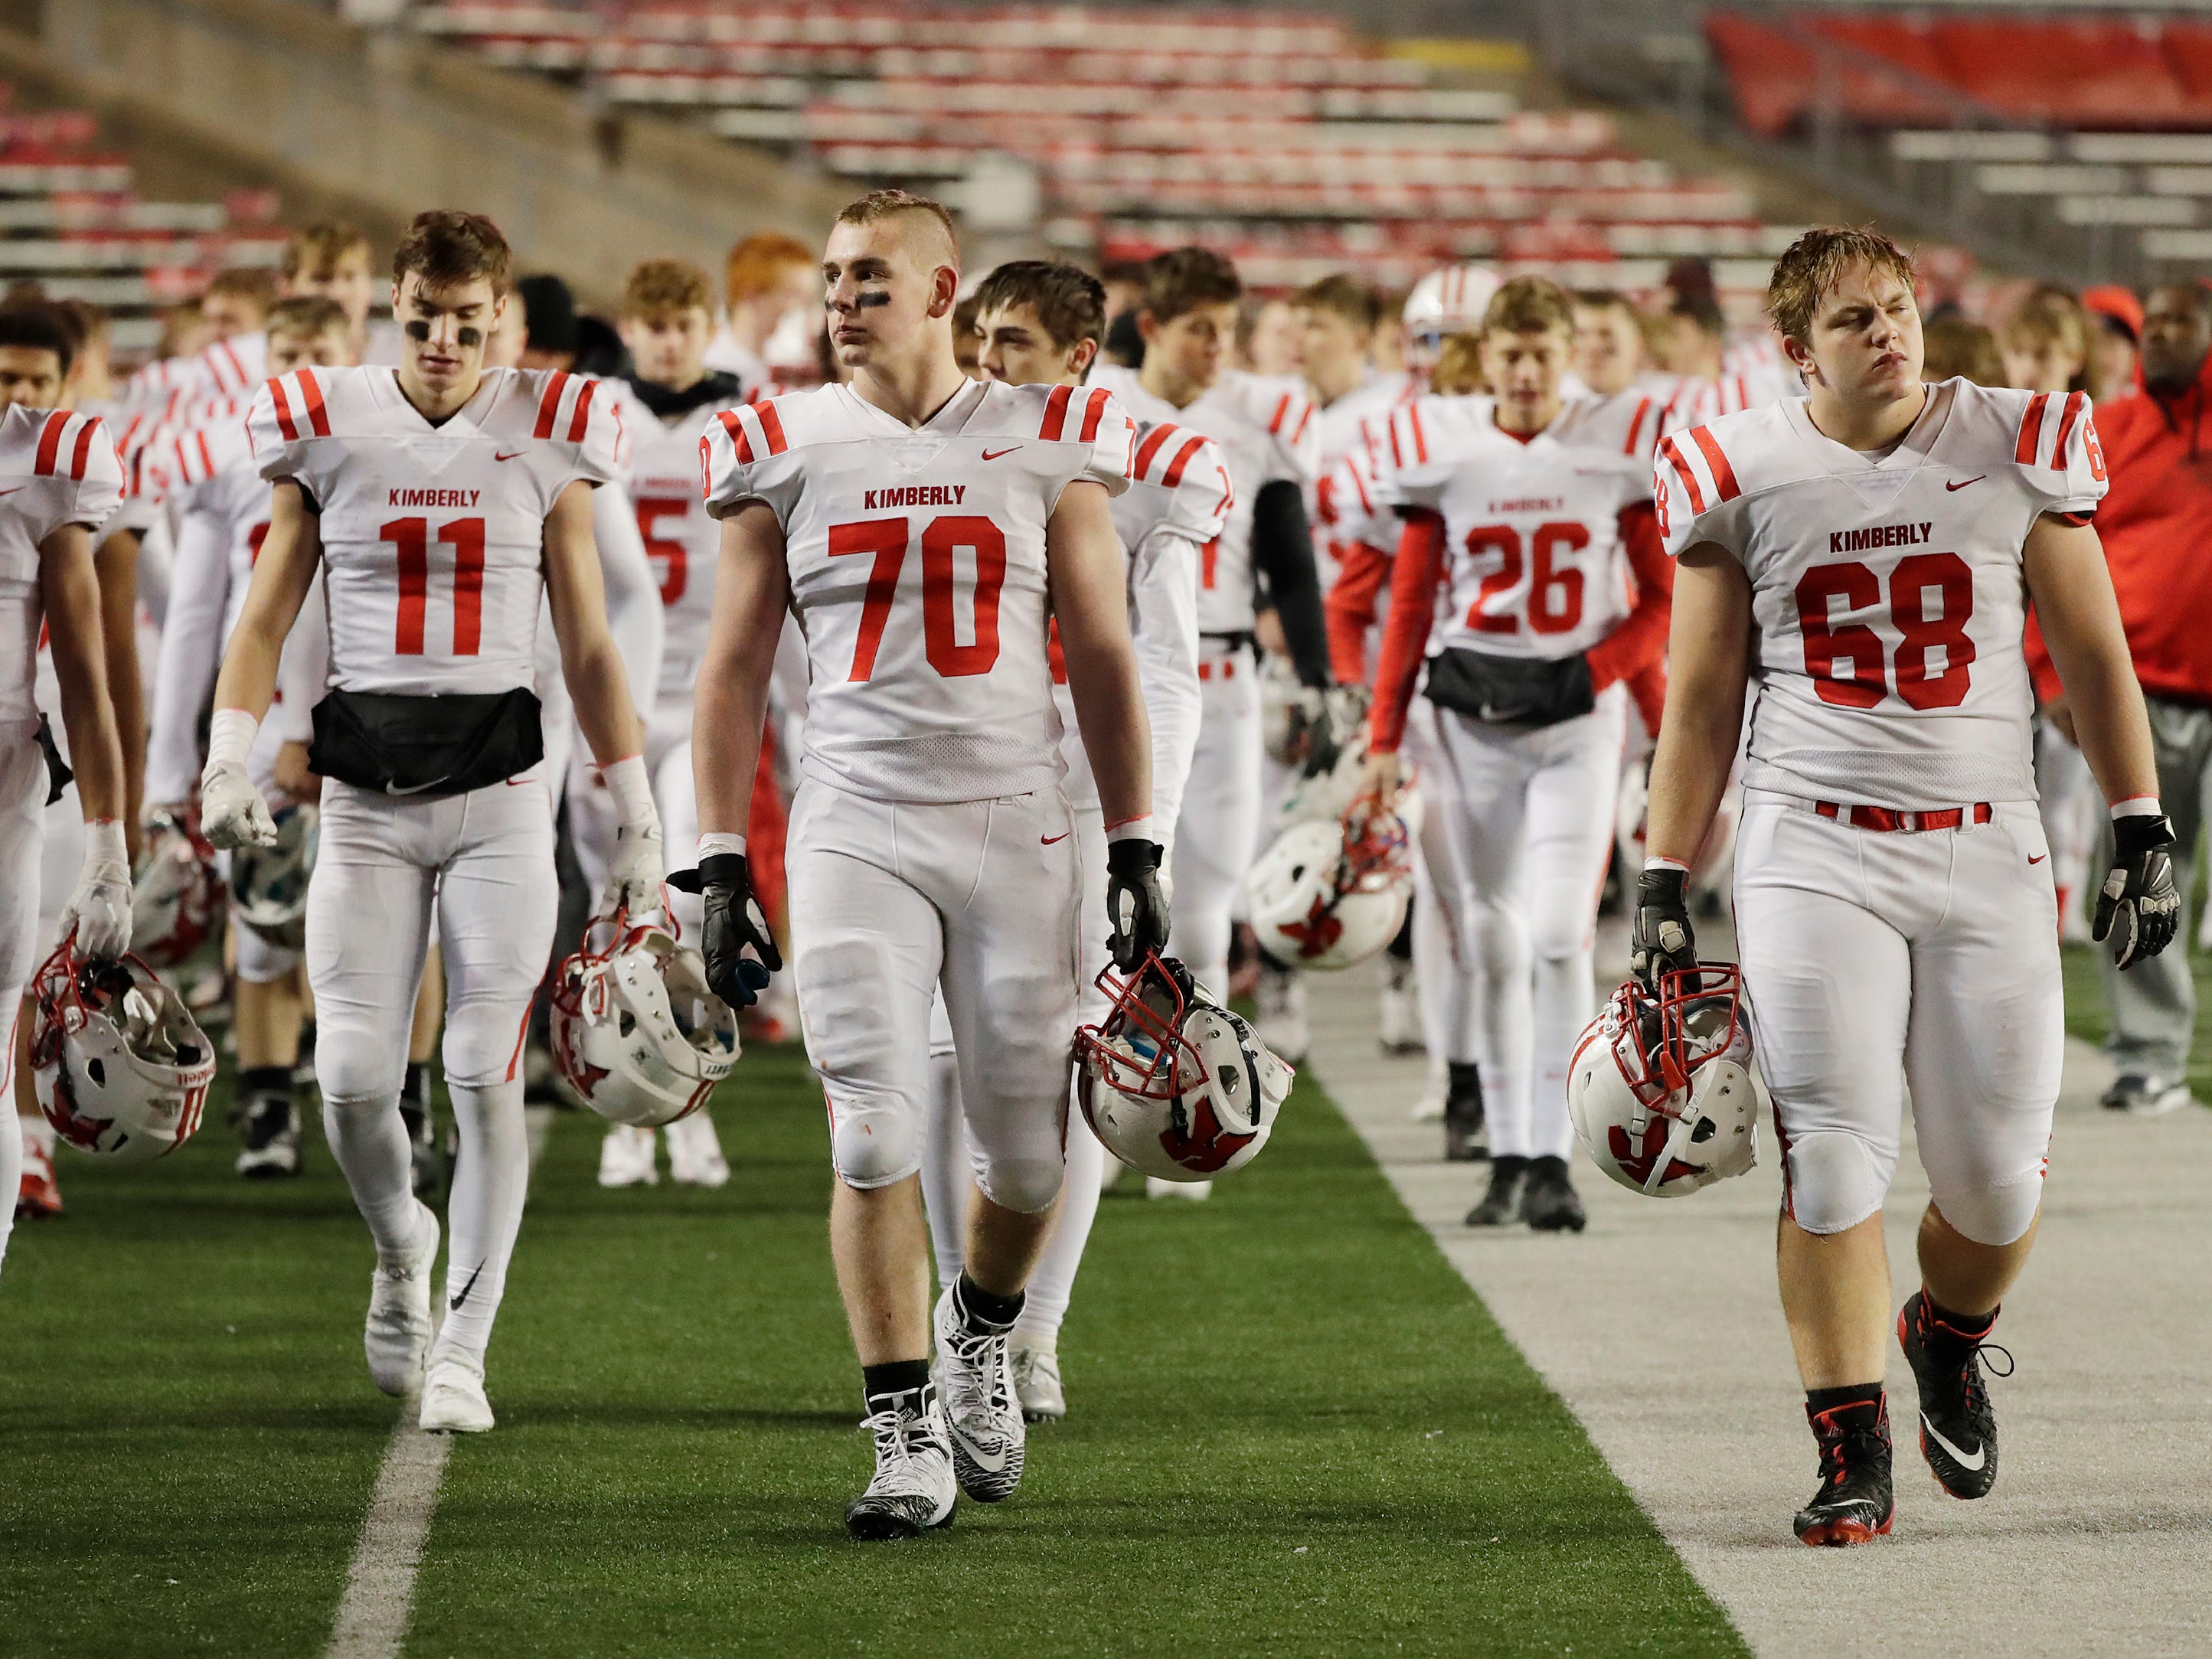 Kimberly player leave the field after losing to Muskego in the WIAA Division 1 championship game at Camp Randall Stadium on Friday, November 16, 2018 in Madison, Wis.